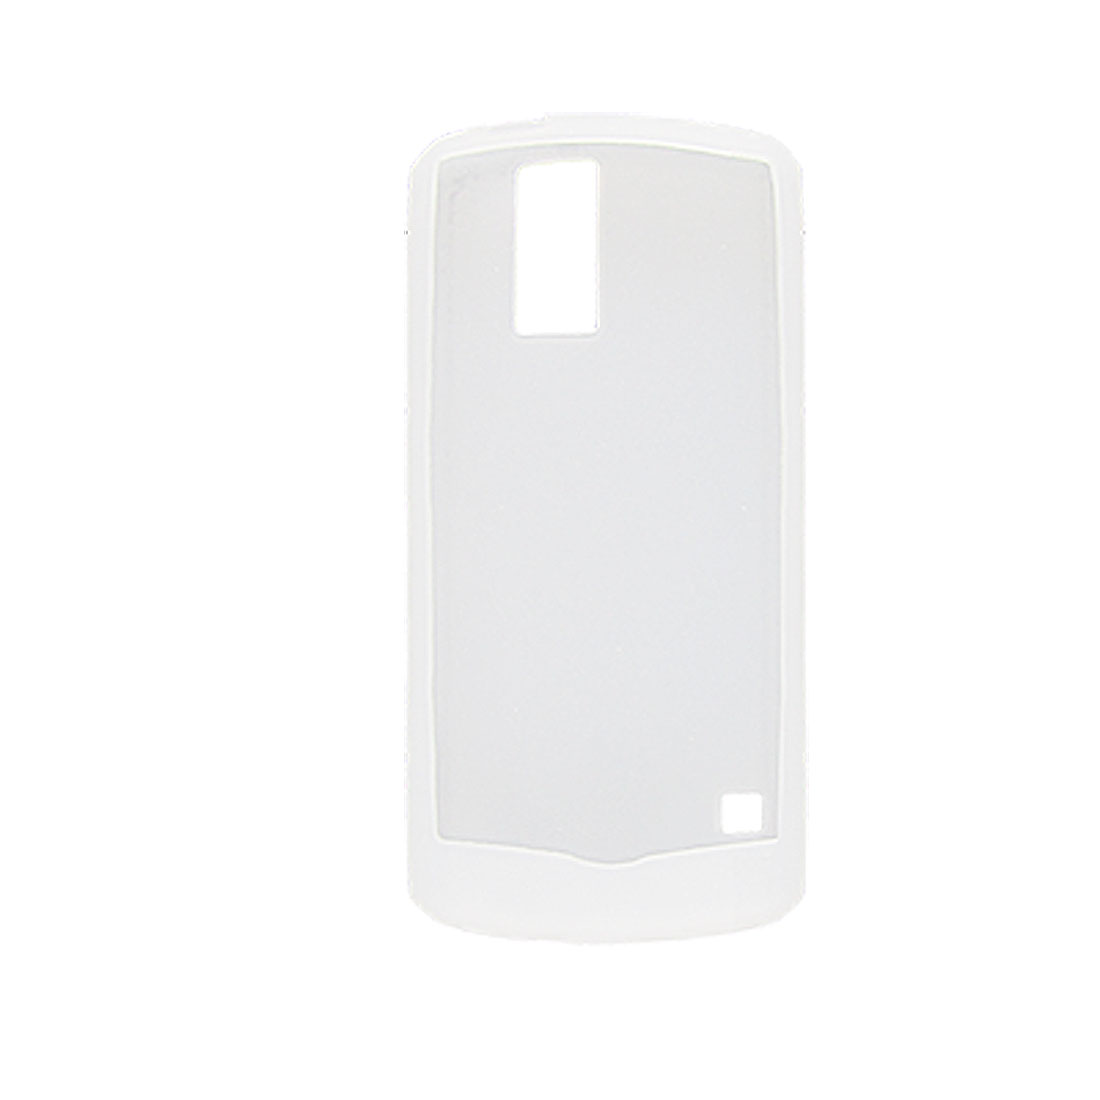 Silicone Phone Shell Cover Skin for Blackberry 8100 Clear White